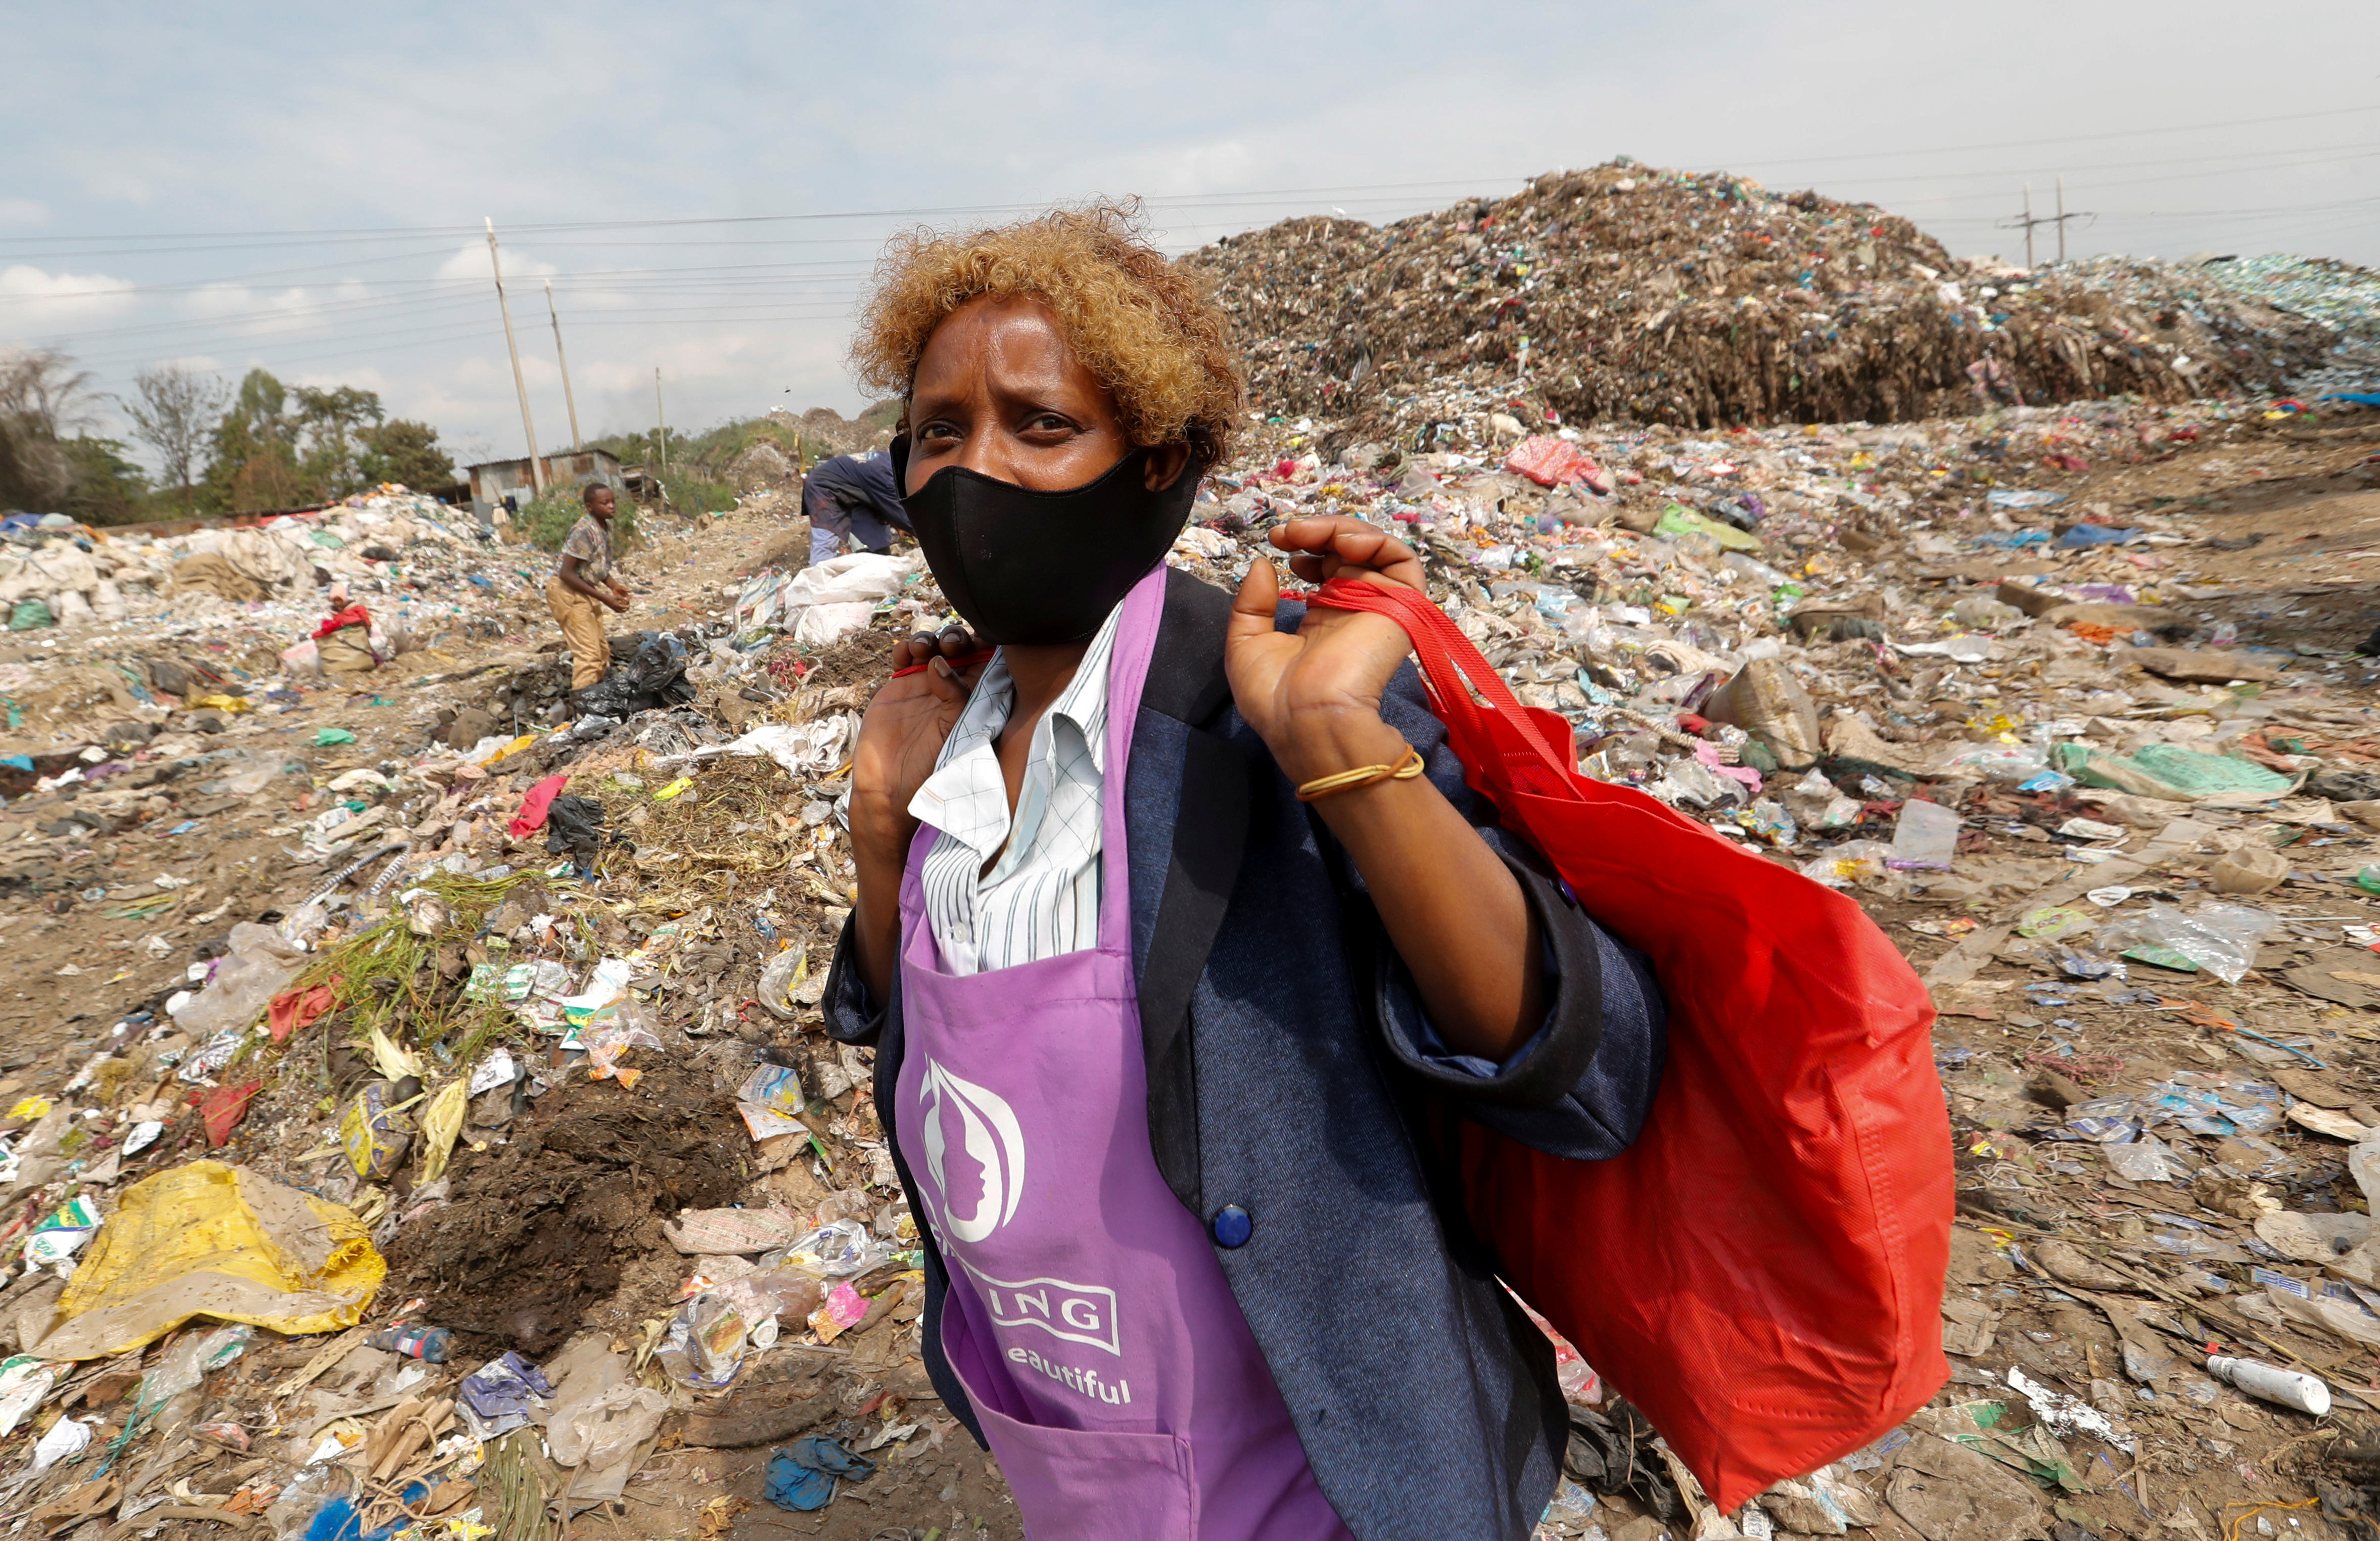 Julia Wanja, a hair stylist, carries bags of women's hair extensions to be recycled from the Dandora dumpsite, amid the coronavirus disease (COVID-19) outbreak in Eastlands Nairobi, Kenya July 29, 2020. Picture taken July 29, 2020. REUTERS/Thomas Mukoya - RC2Y6I9BUWER